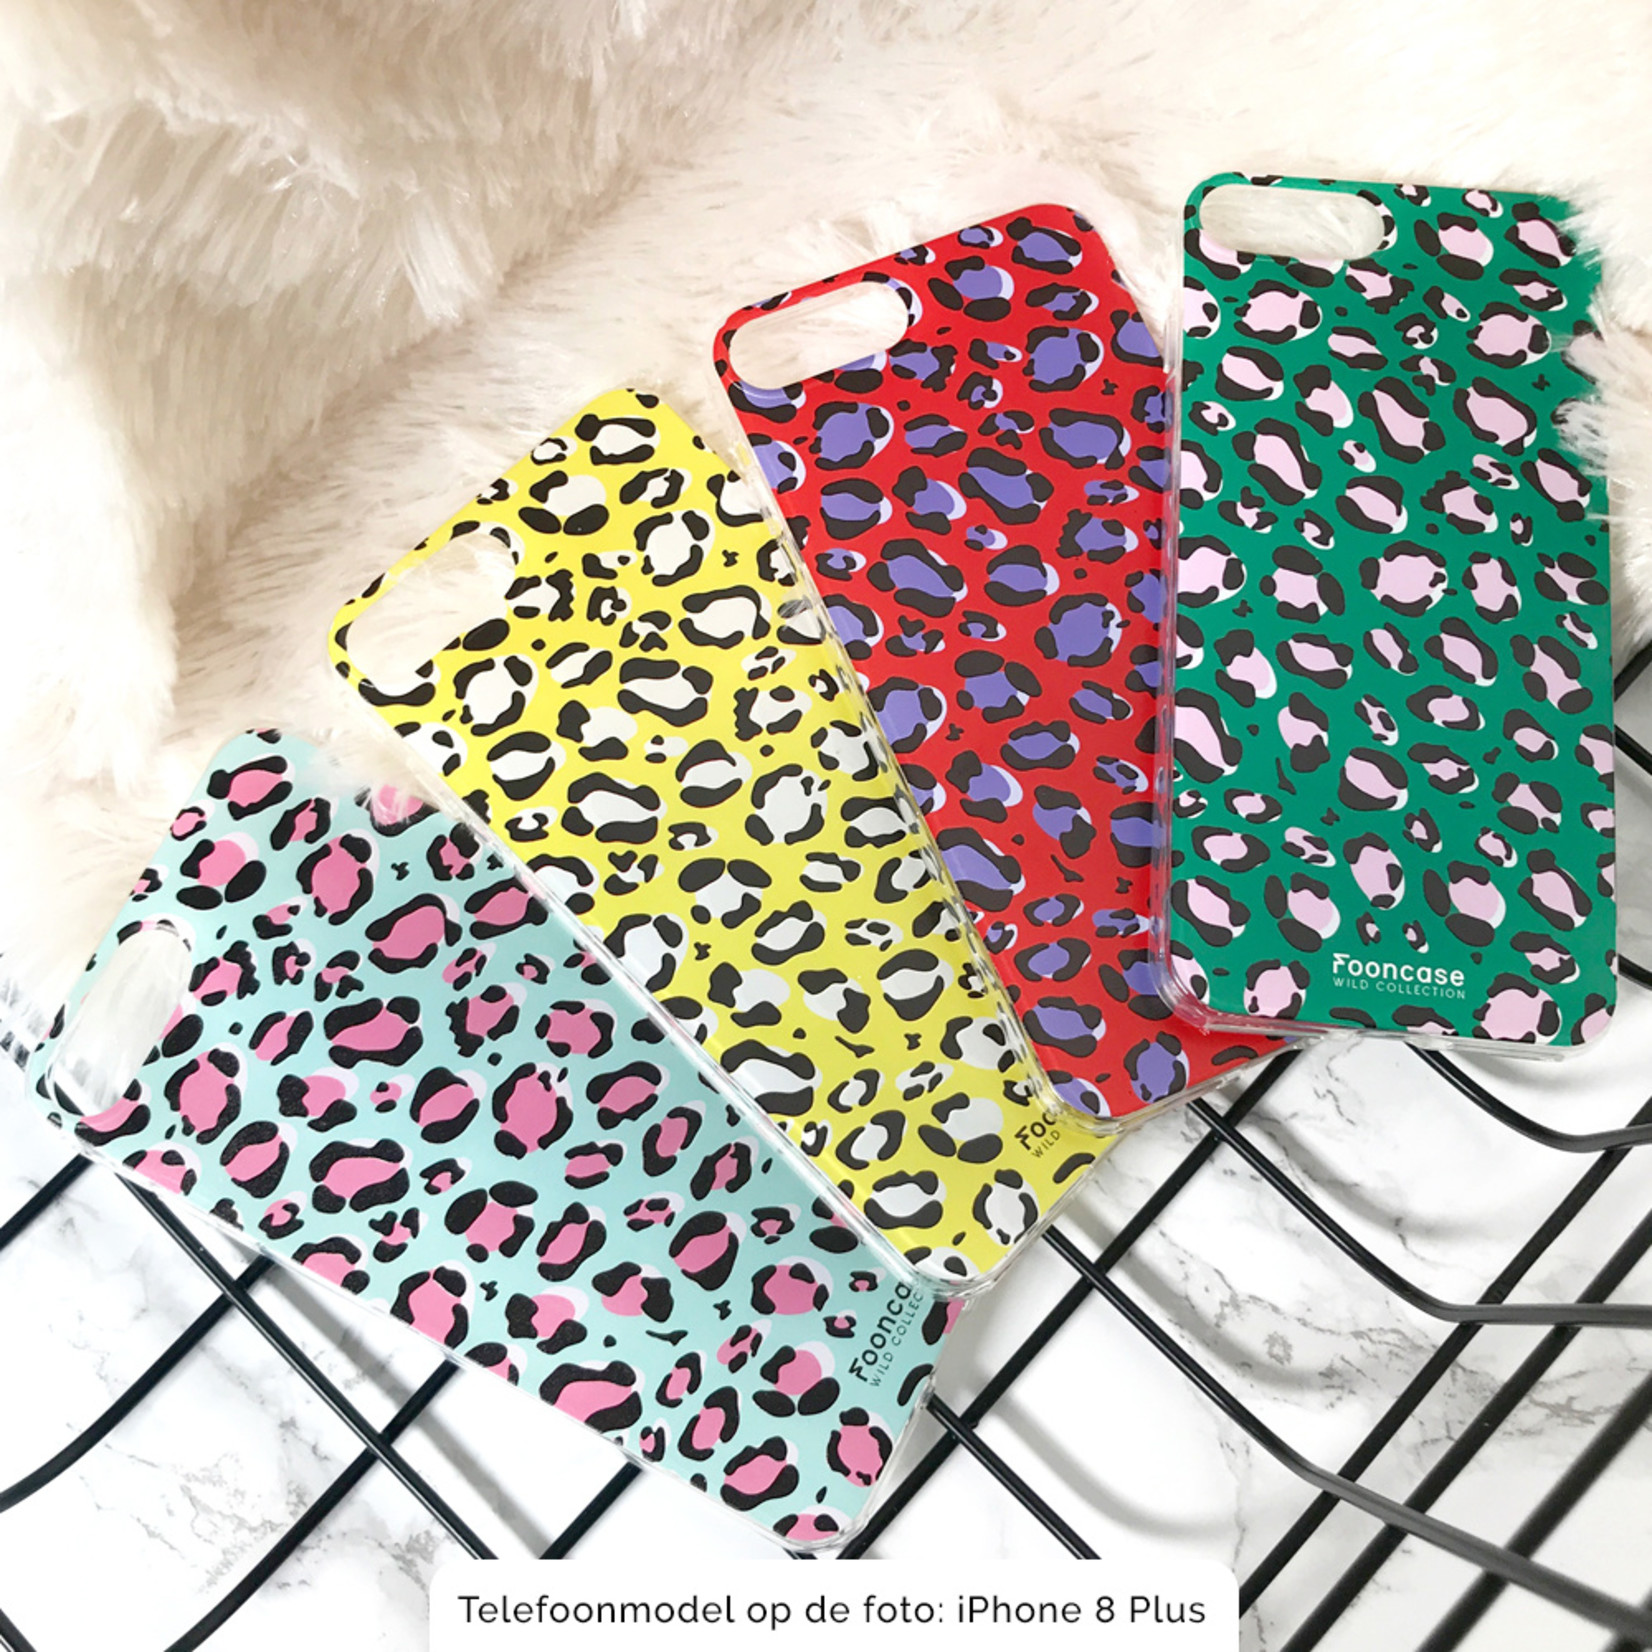 FOONCASE Huawei P10 hoesje TPU Soft Case - Back Cover - WILD COLLECTION / Luipaard / Leopard print / Blauw